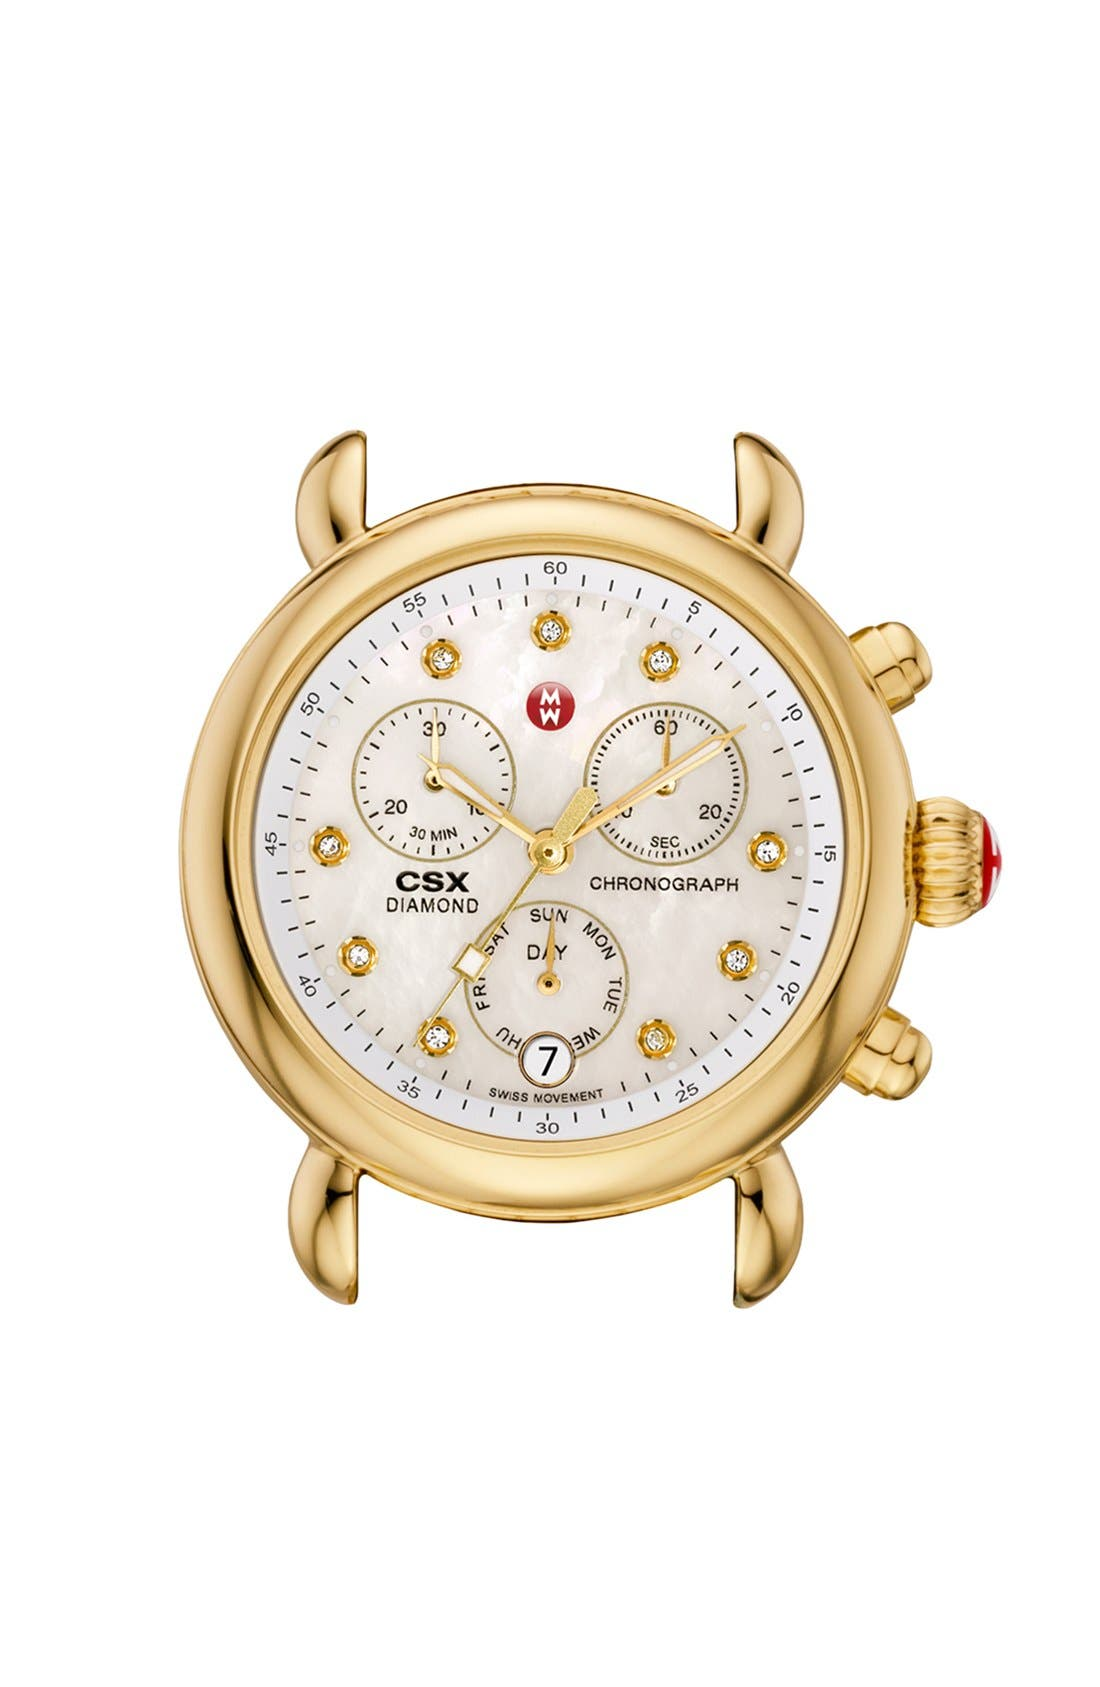 Alternate Image 1 Selected - MICHELE 'CSX-36' Diamond Dial Gold Plated Watch Case, 36mm